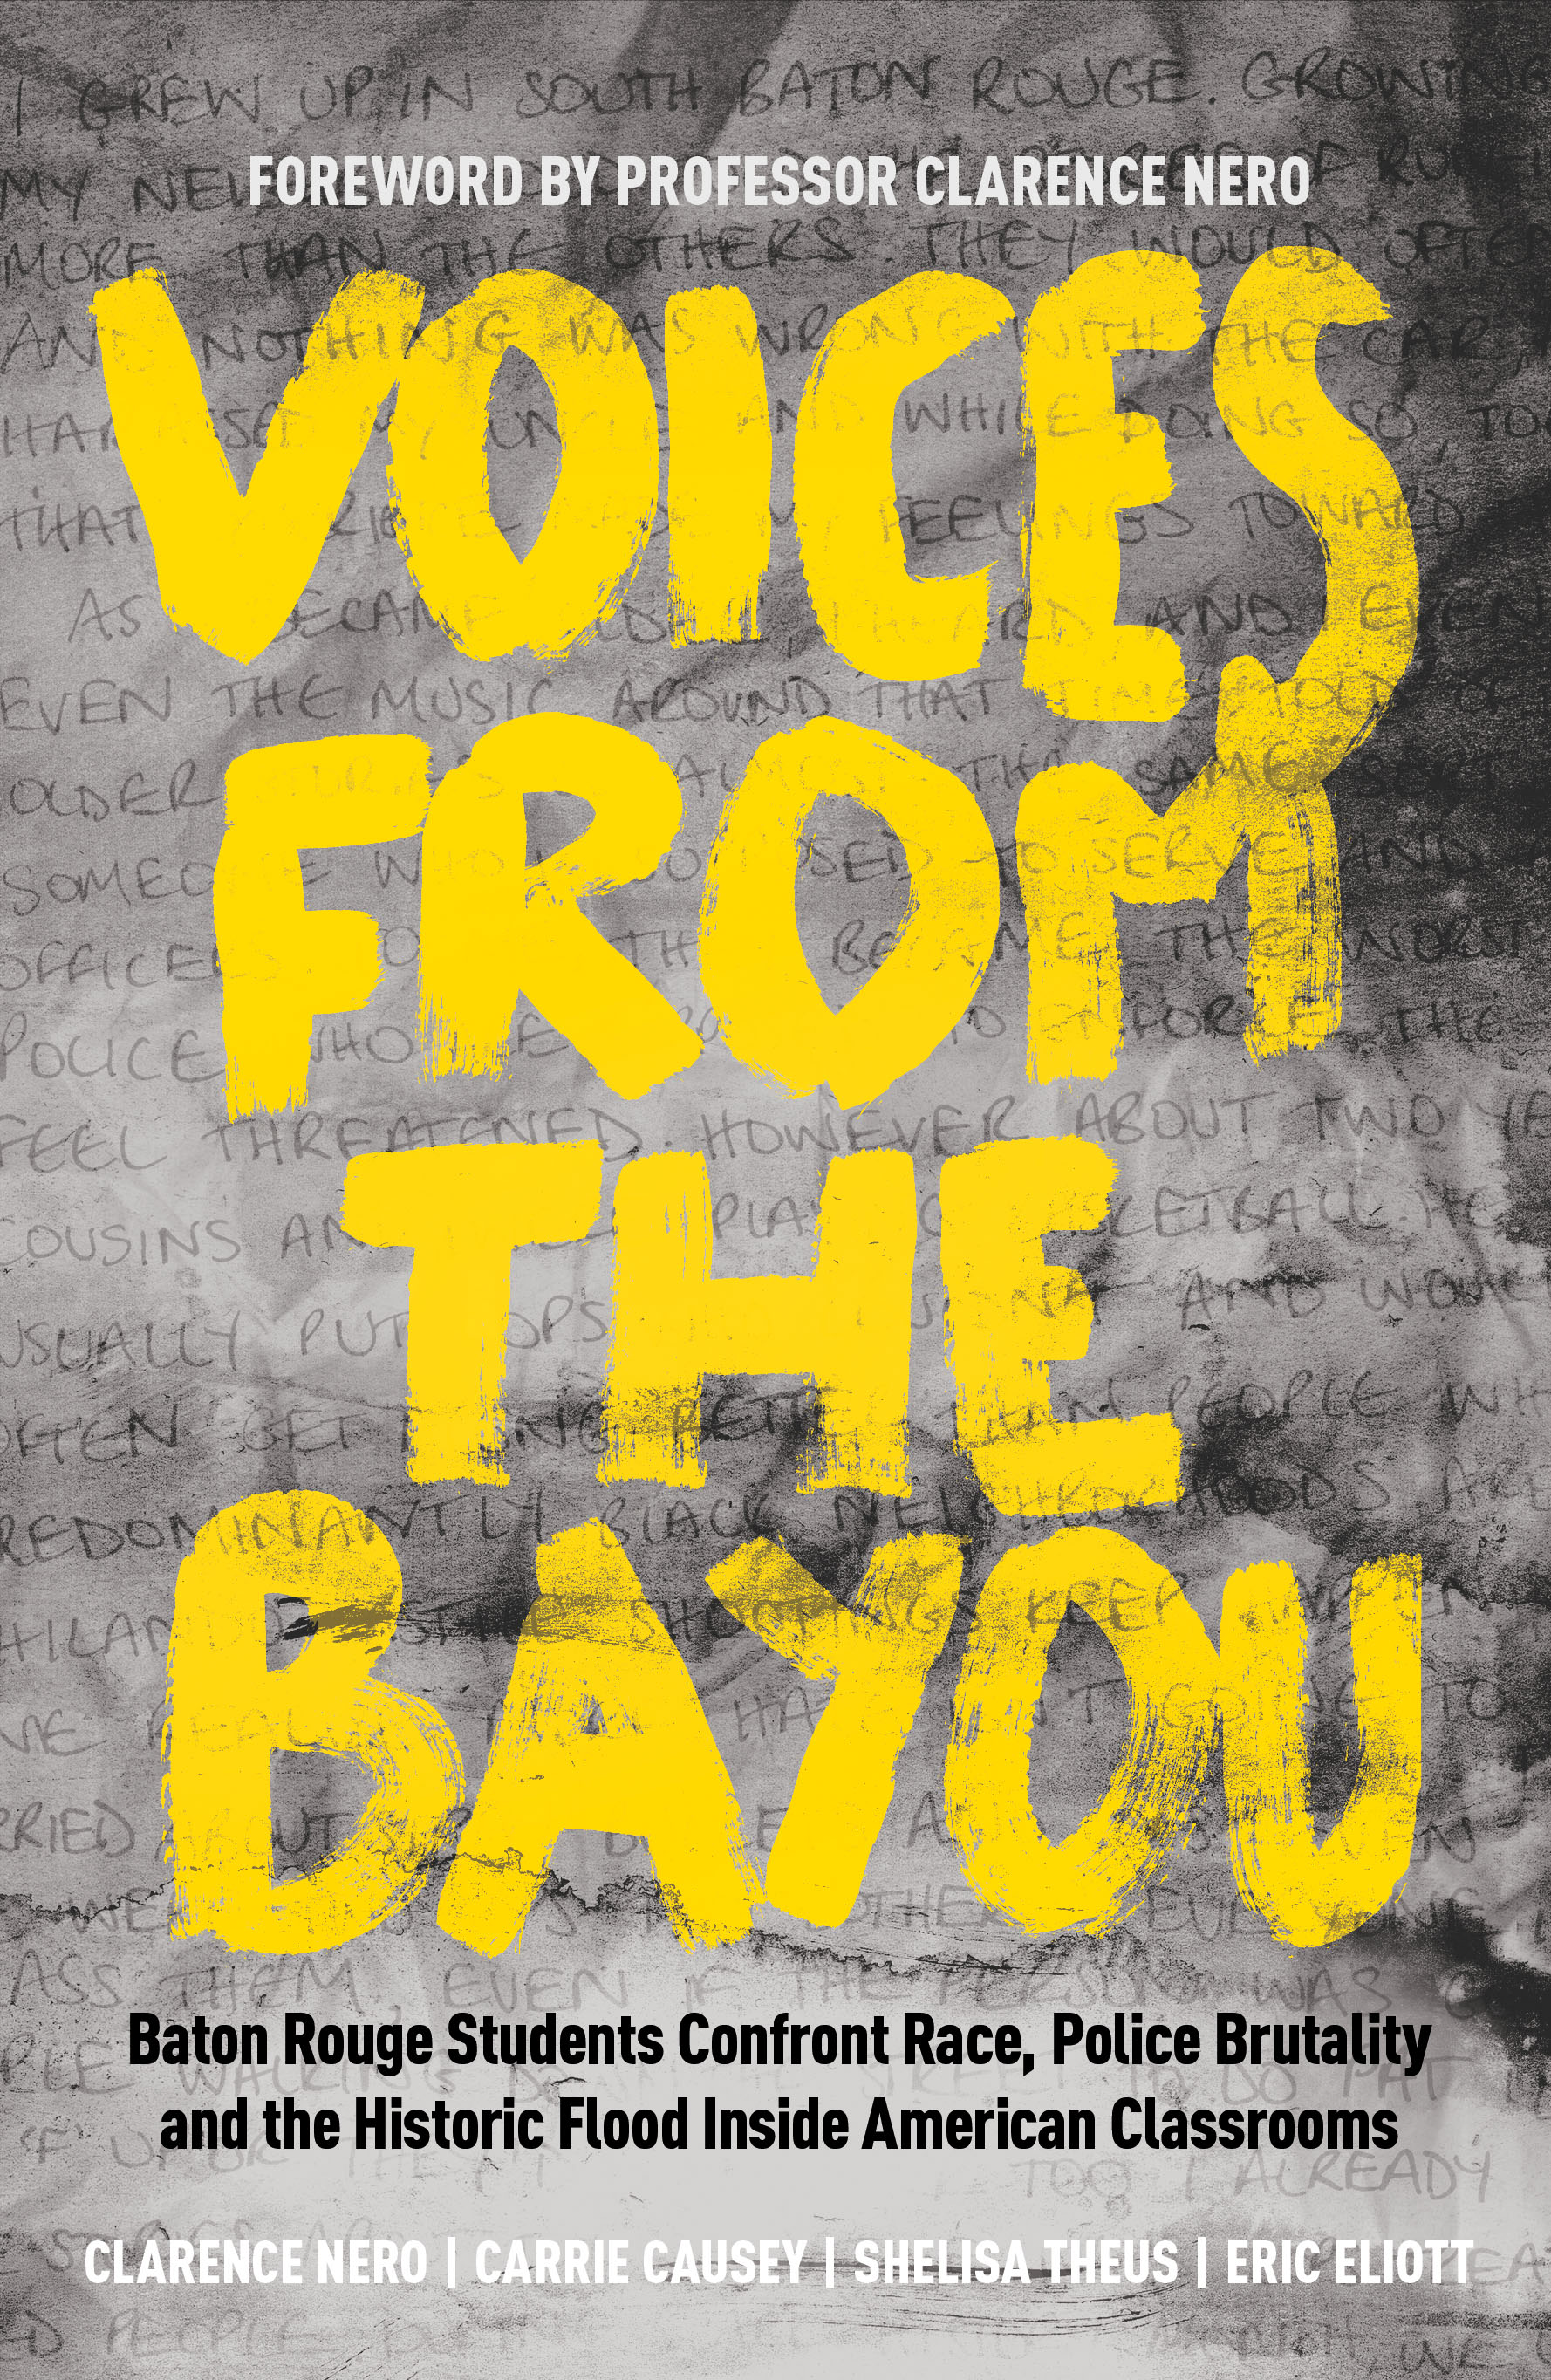 "About - A student motivated anthology called ""Voices from the Bayou"" has been produced and edited by Professor Clarence Nero and published through the Baton Rouge Community College Foundation for the purpose of allowing students a voice regarding their views relating to the shootings and historic flood in Baton Rouge over the past year.Proceeds from the publication will benefit English Department students and faculty."